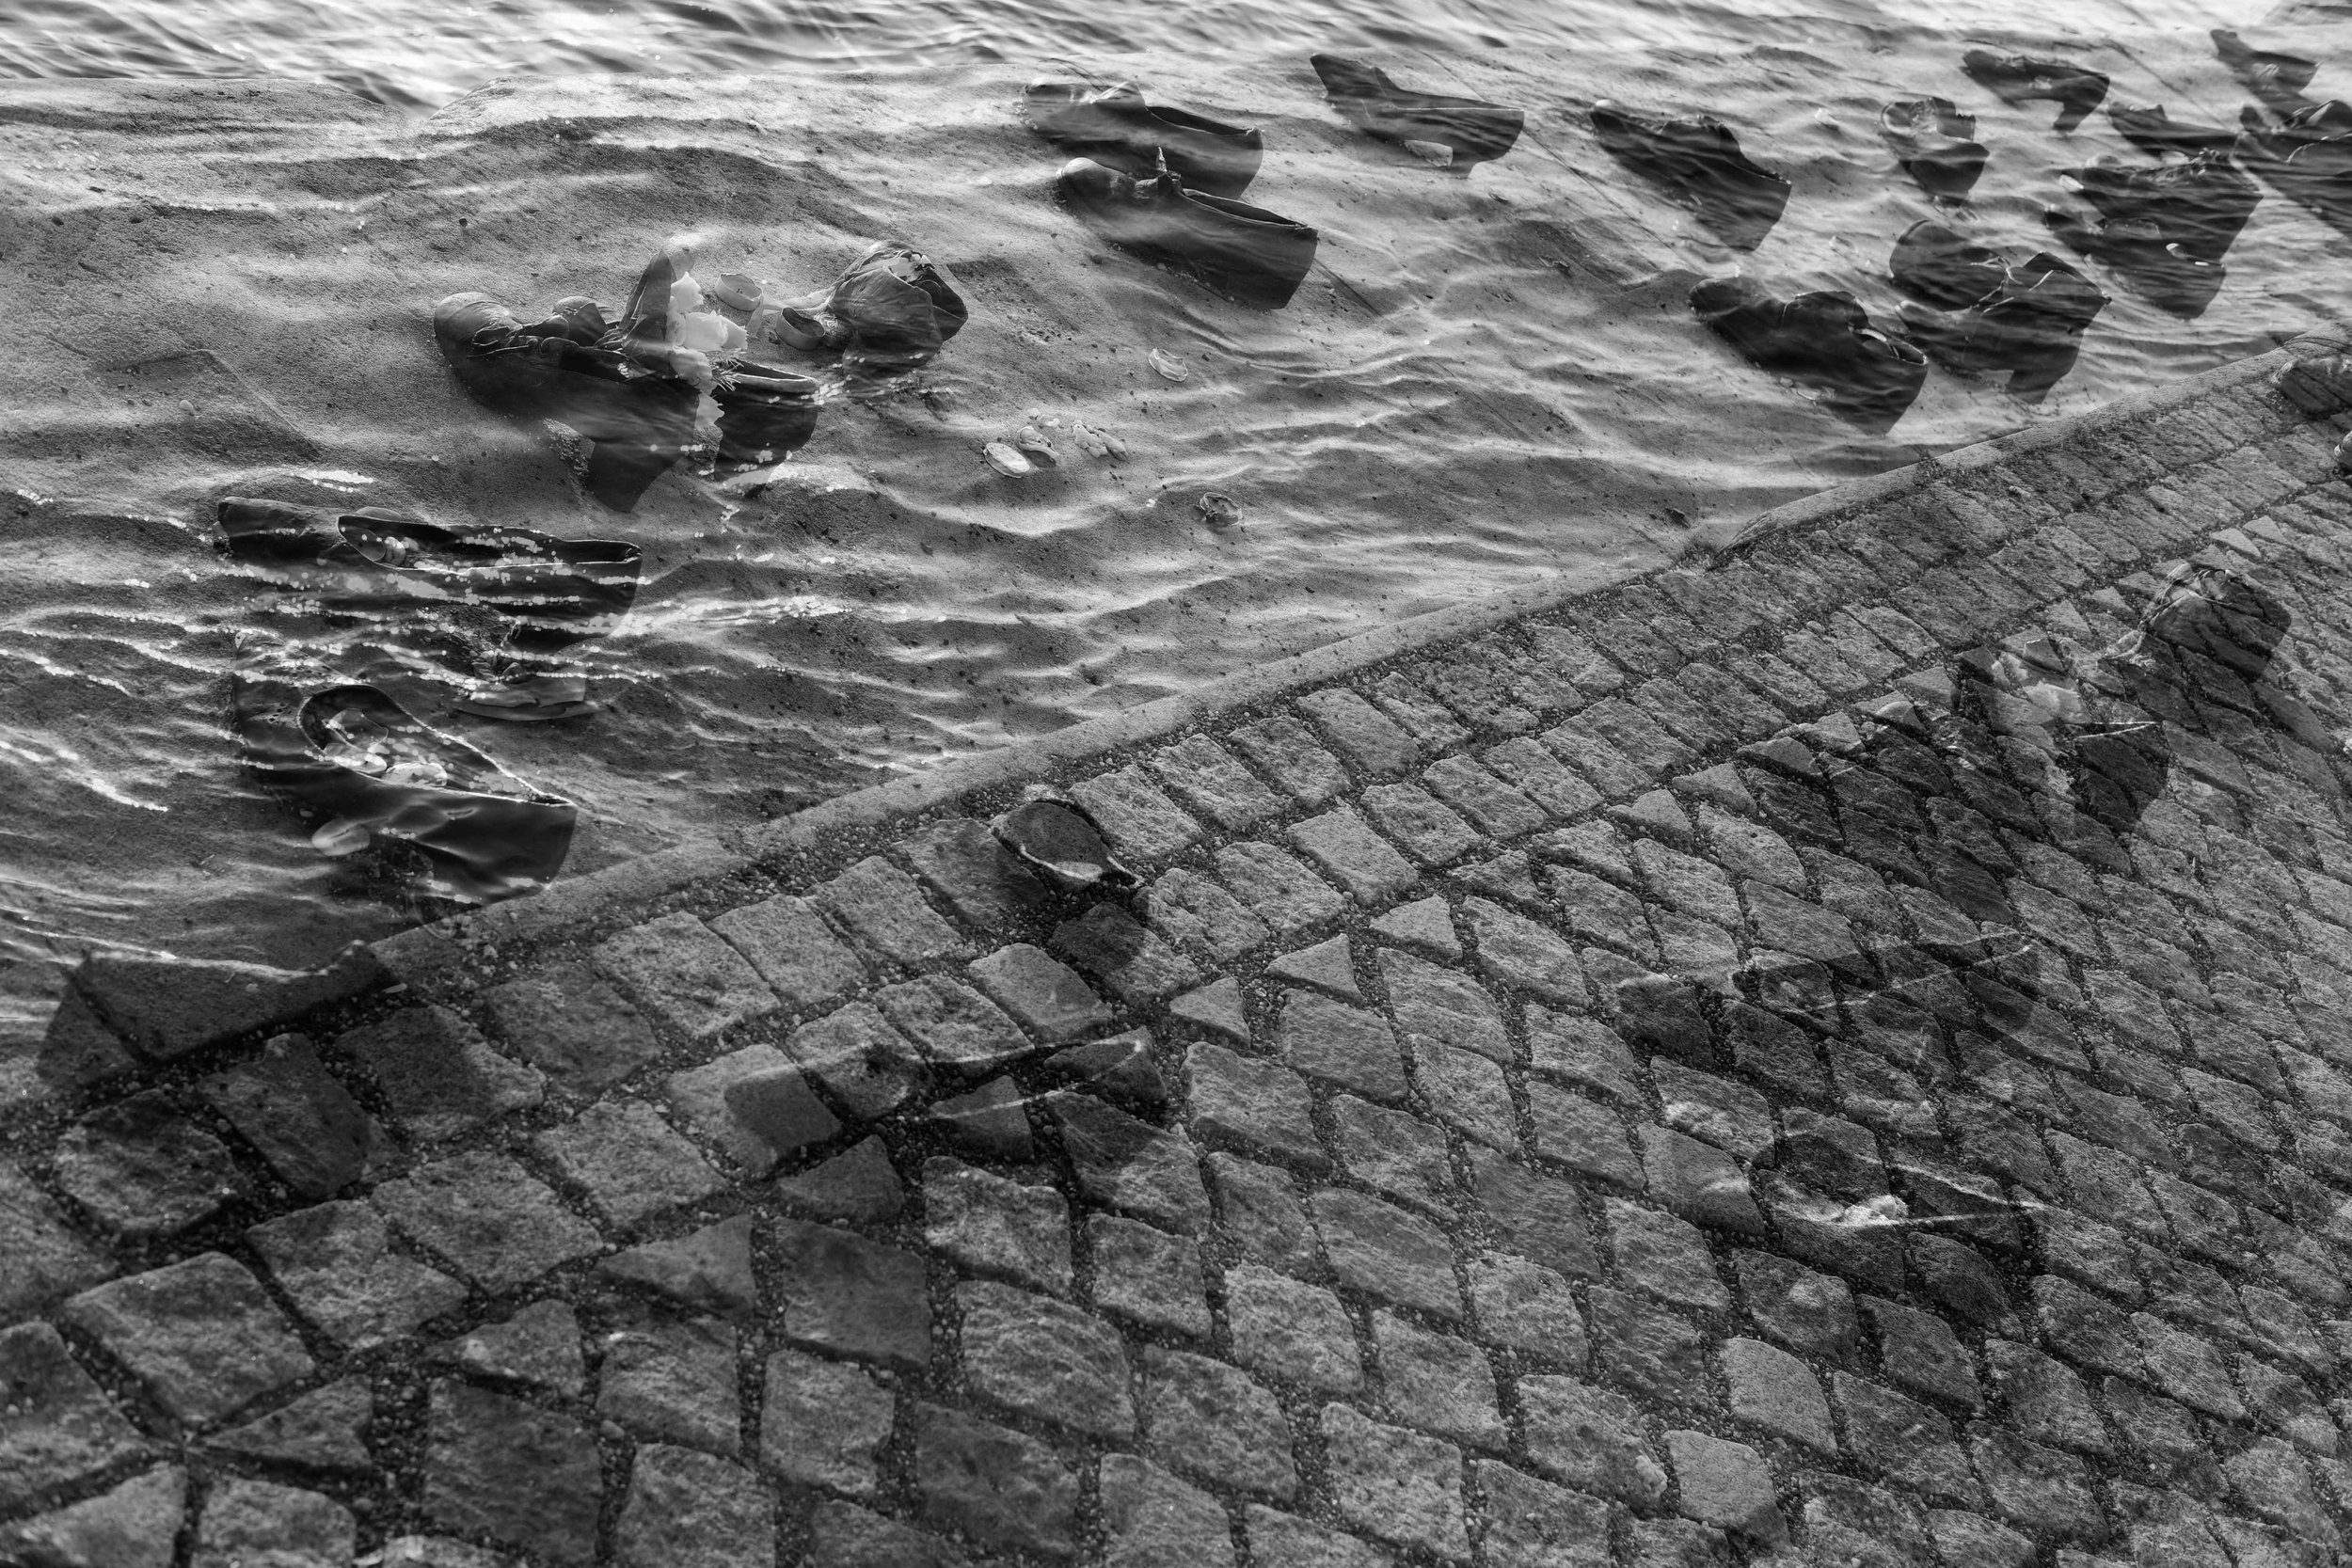 Jewish persecution during WW II. About 100 Jews were tethered together and taken to the banks of the Danube. 2 or 3 of them shot, falling into the river and pulling the rest with them to die by drowning. This is a double exposure of an art installation:cast iron shoes along the banks of the Danube.